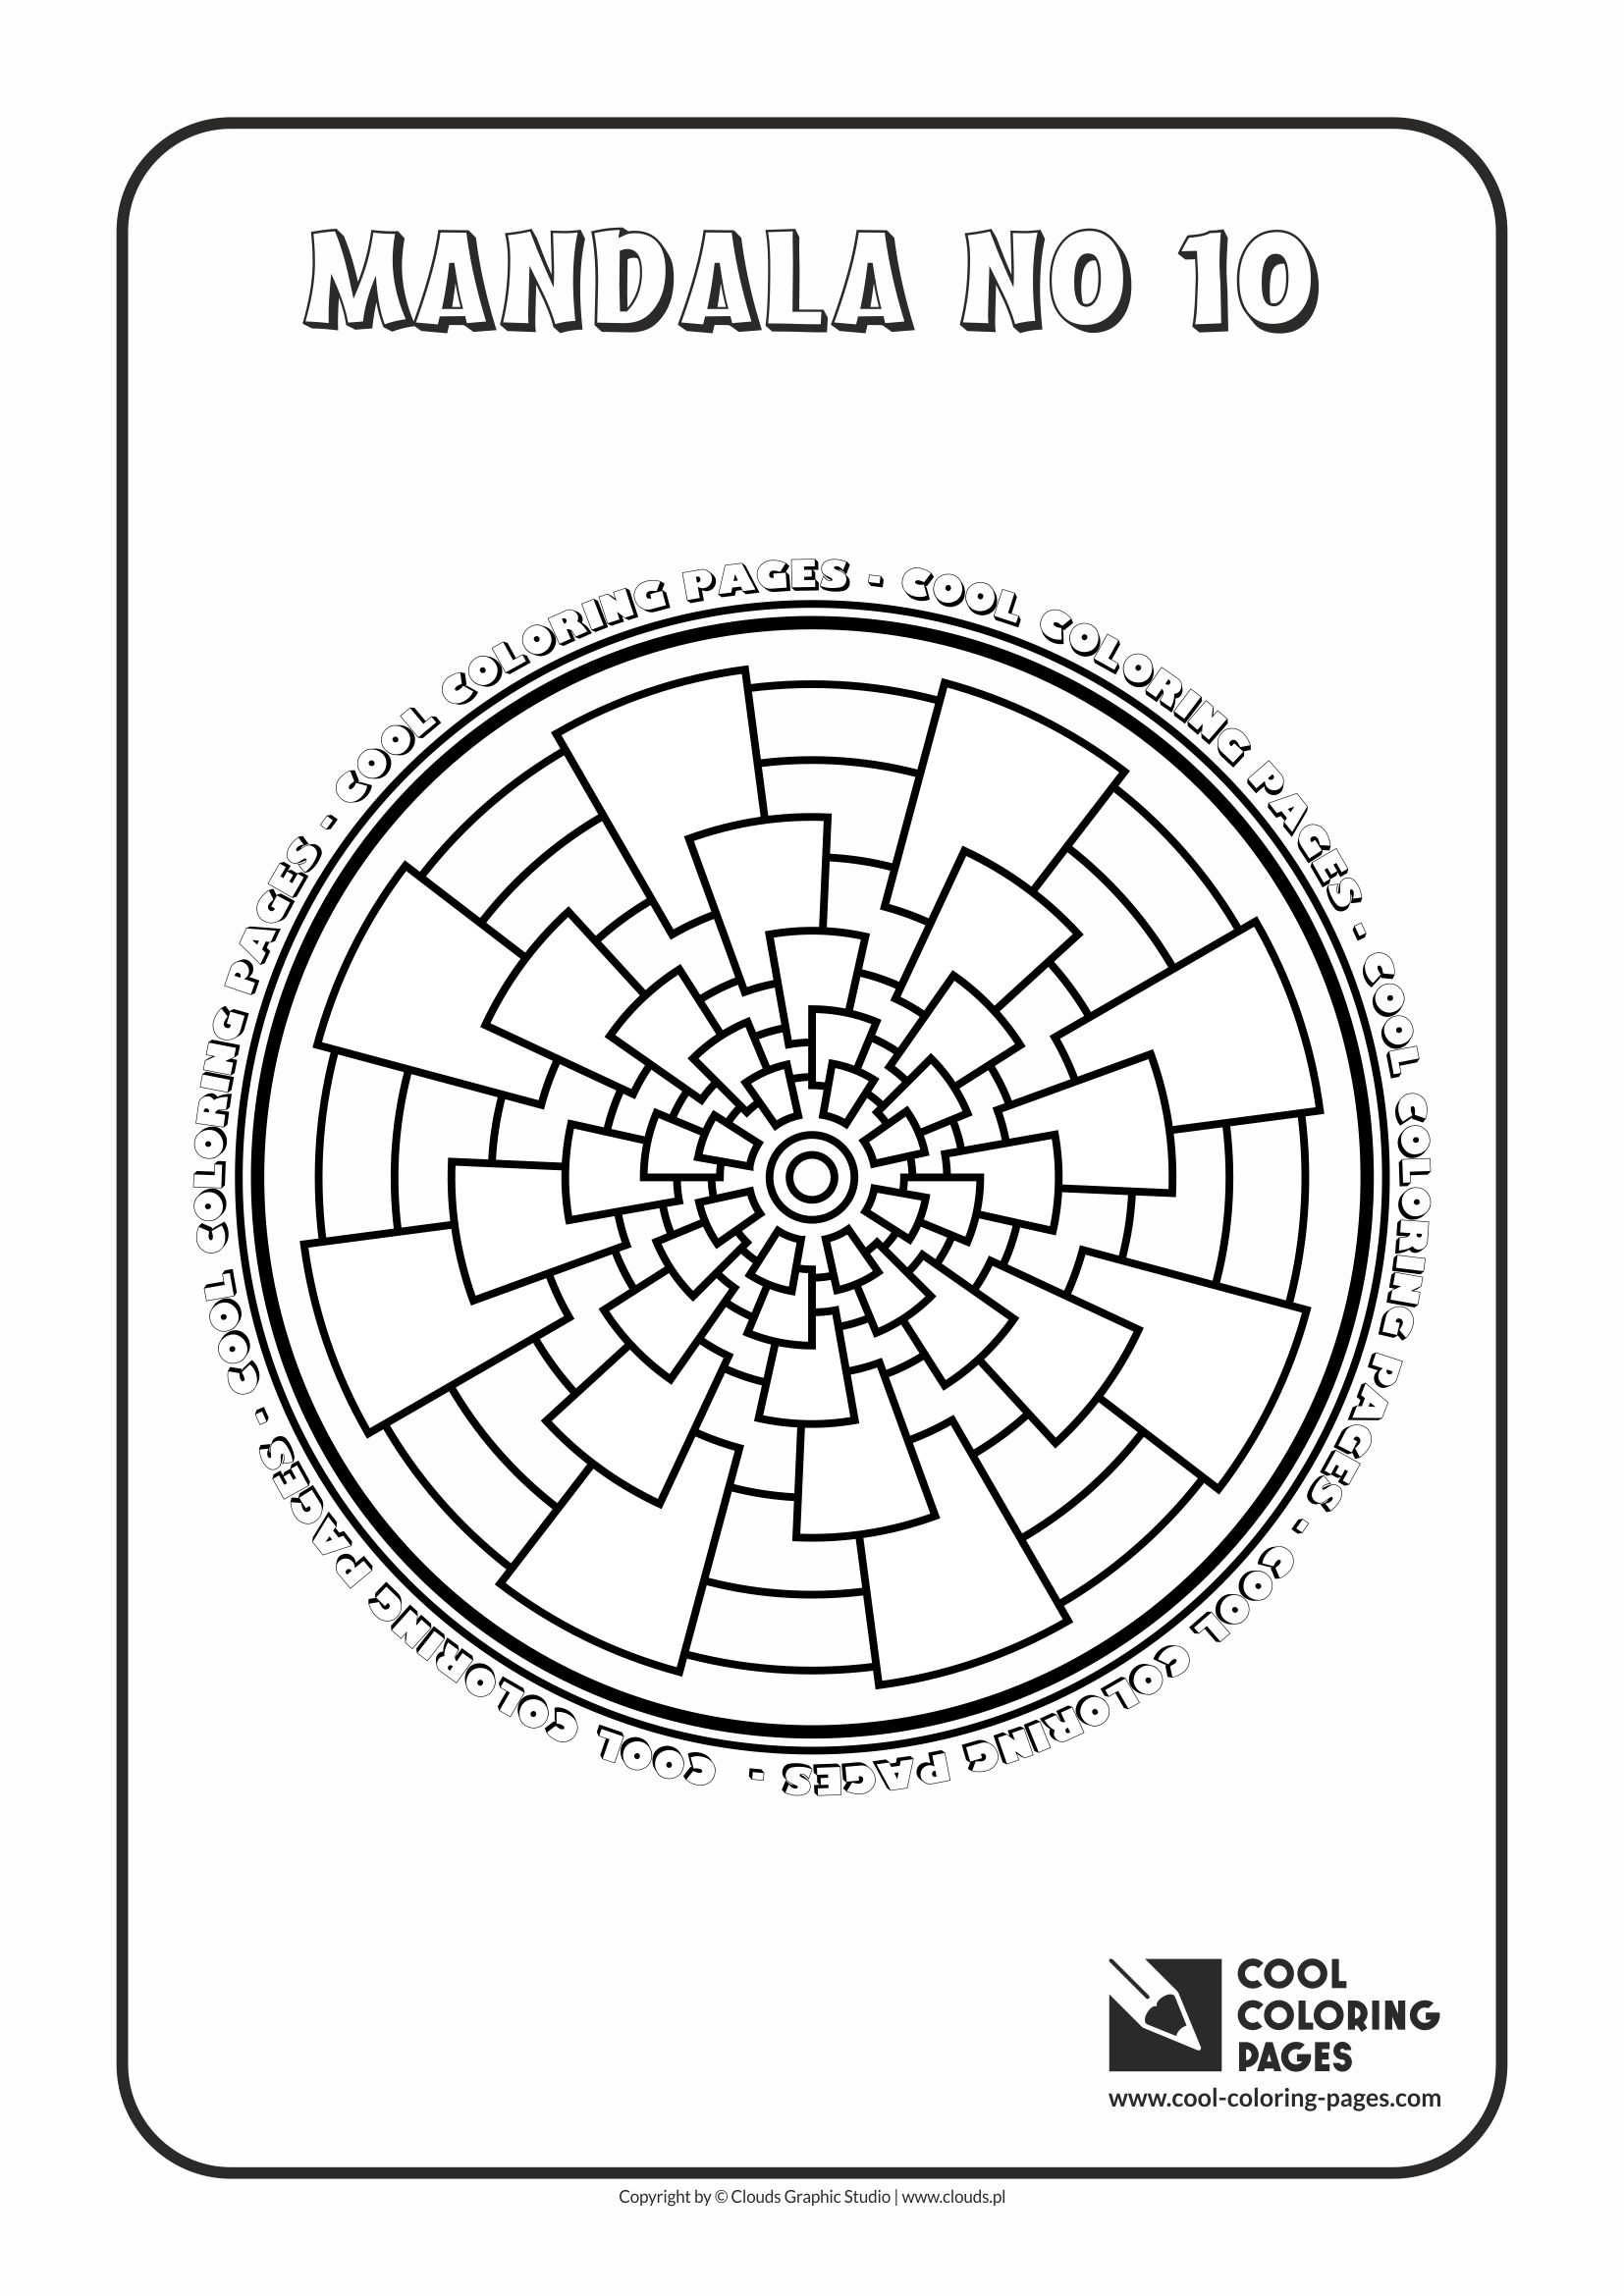 Cool Coloring Pages - Mandalas / Mandala no 10